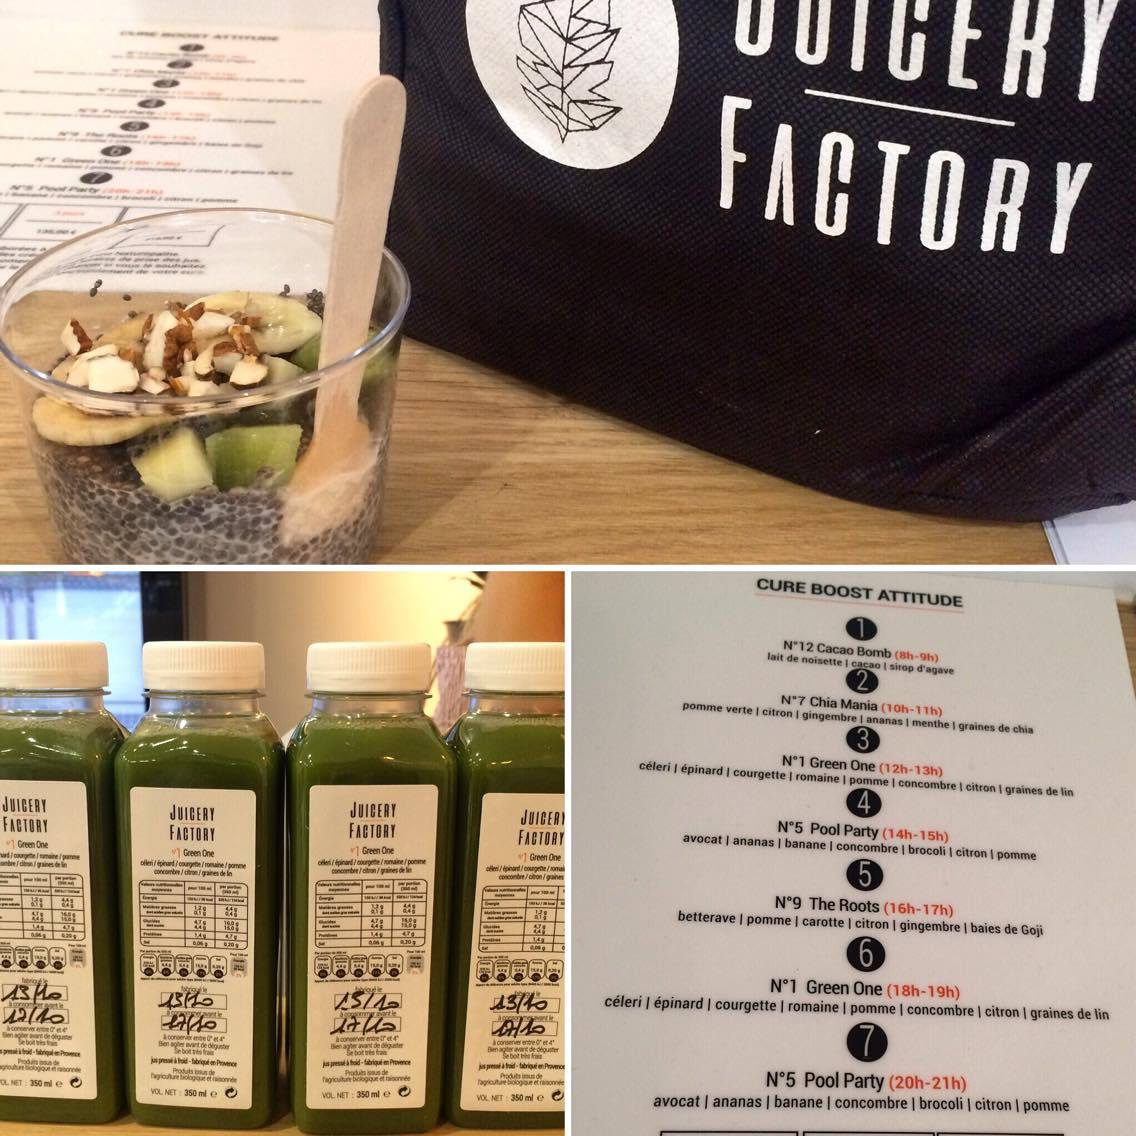 juicery-factory-4